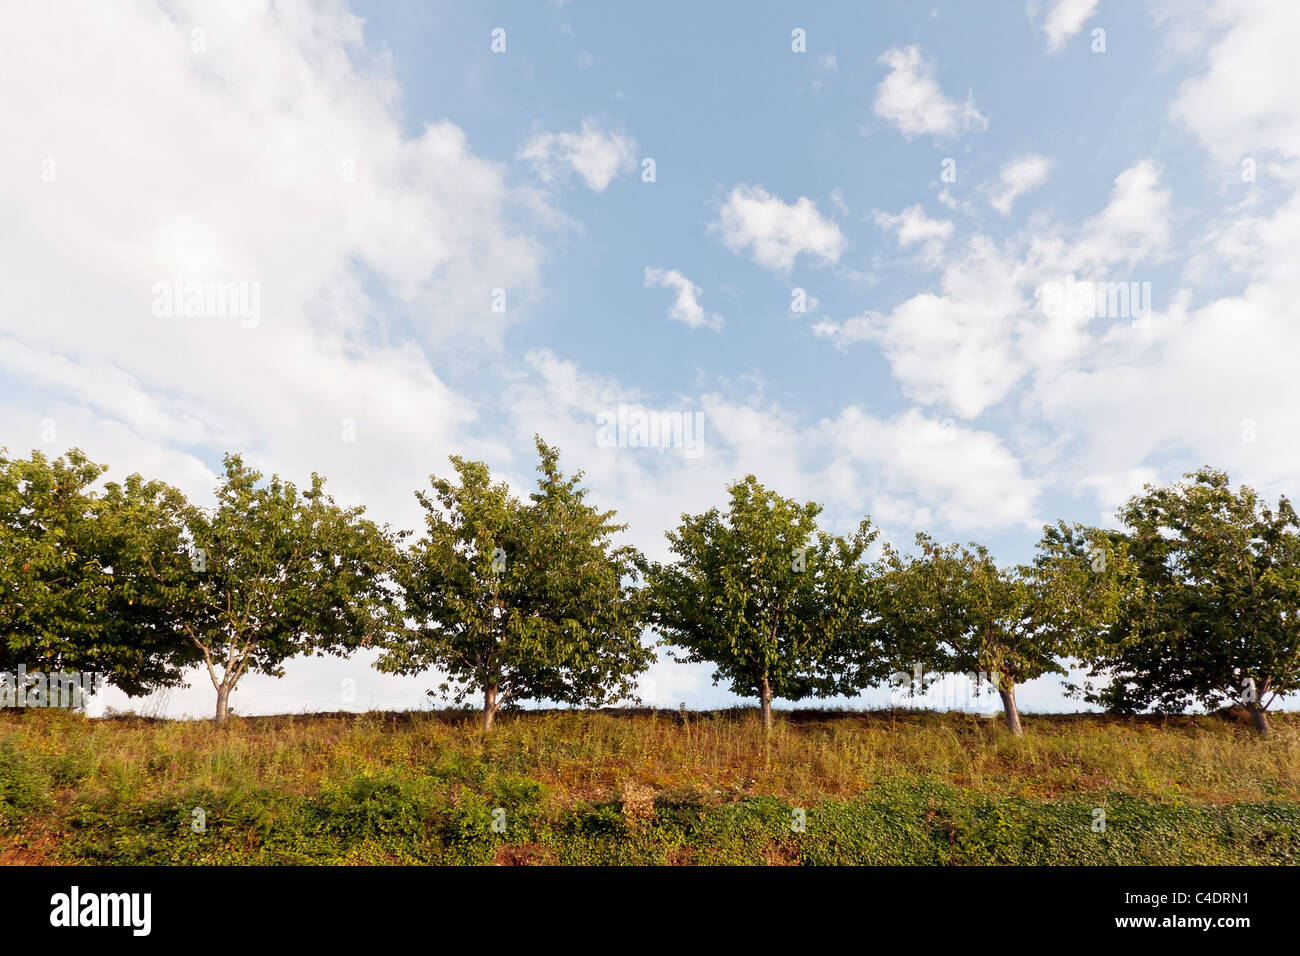 Small Trees on hill against blue sky and clouds - Stock Image